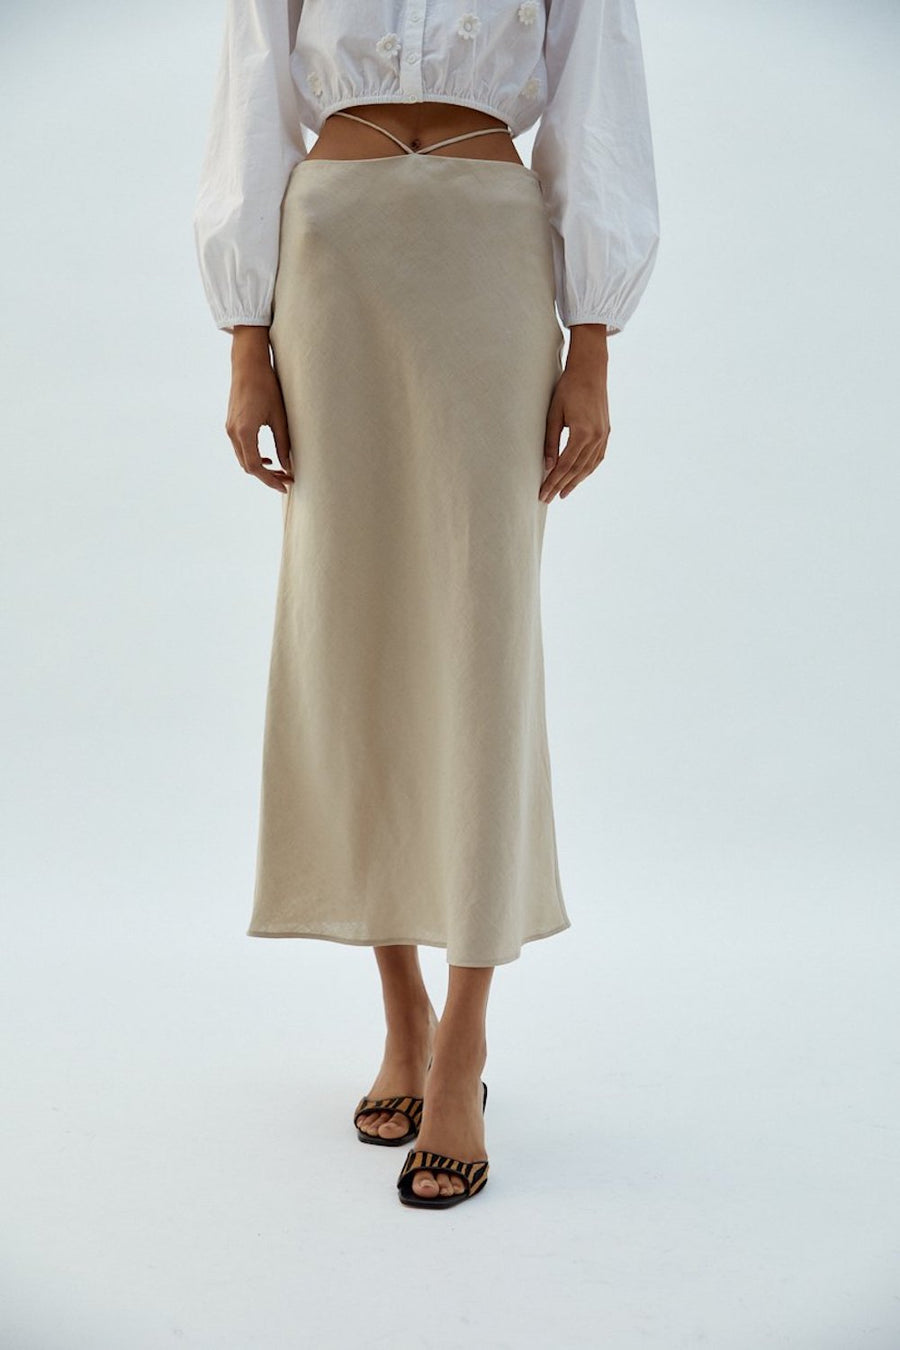 Hope Skirt | Beige | skirts NZ | MUSIER PARIS NZ | Black Box Boutique Auckland | Womens Fashion NZ